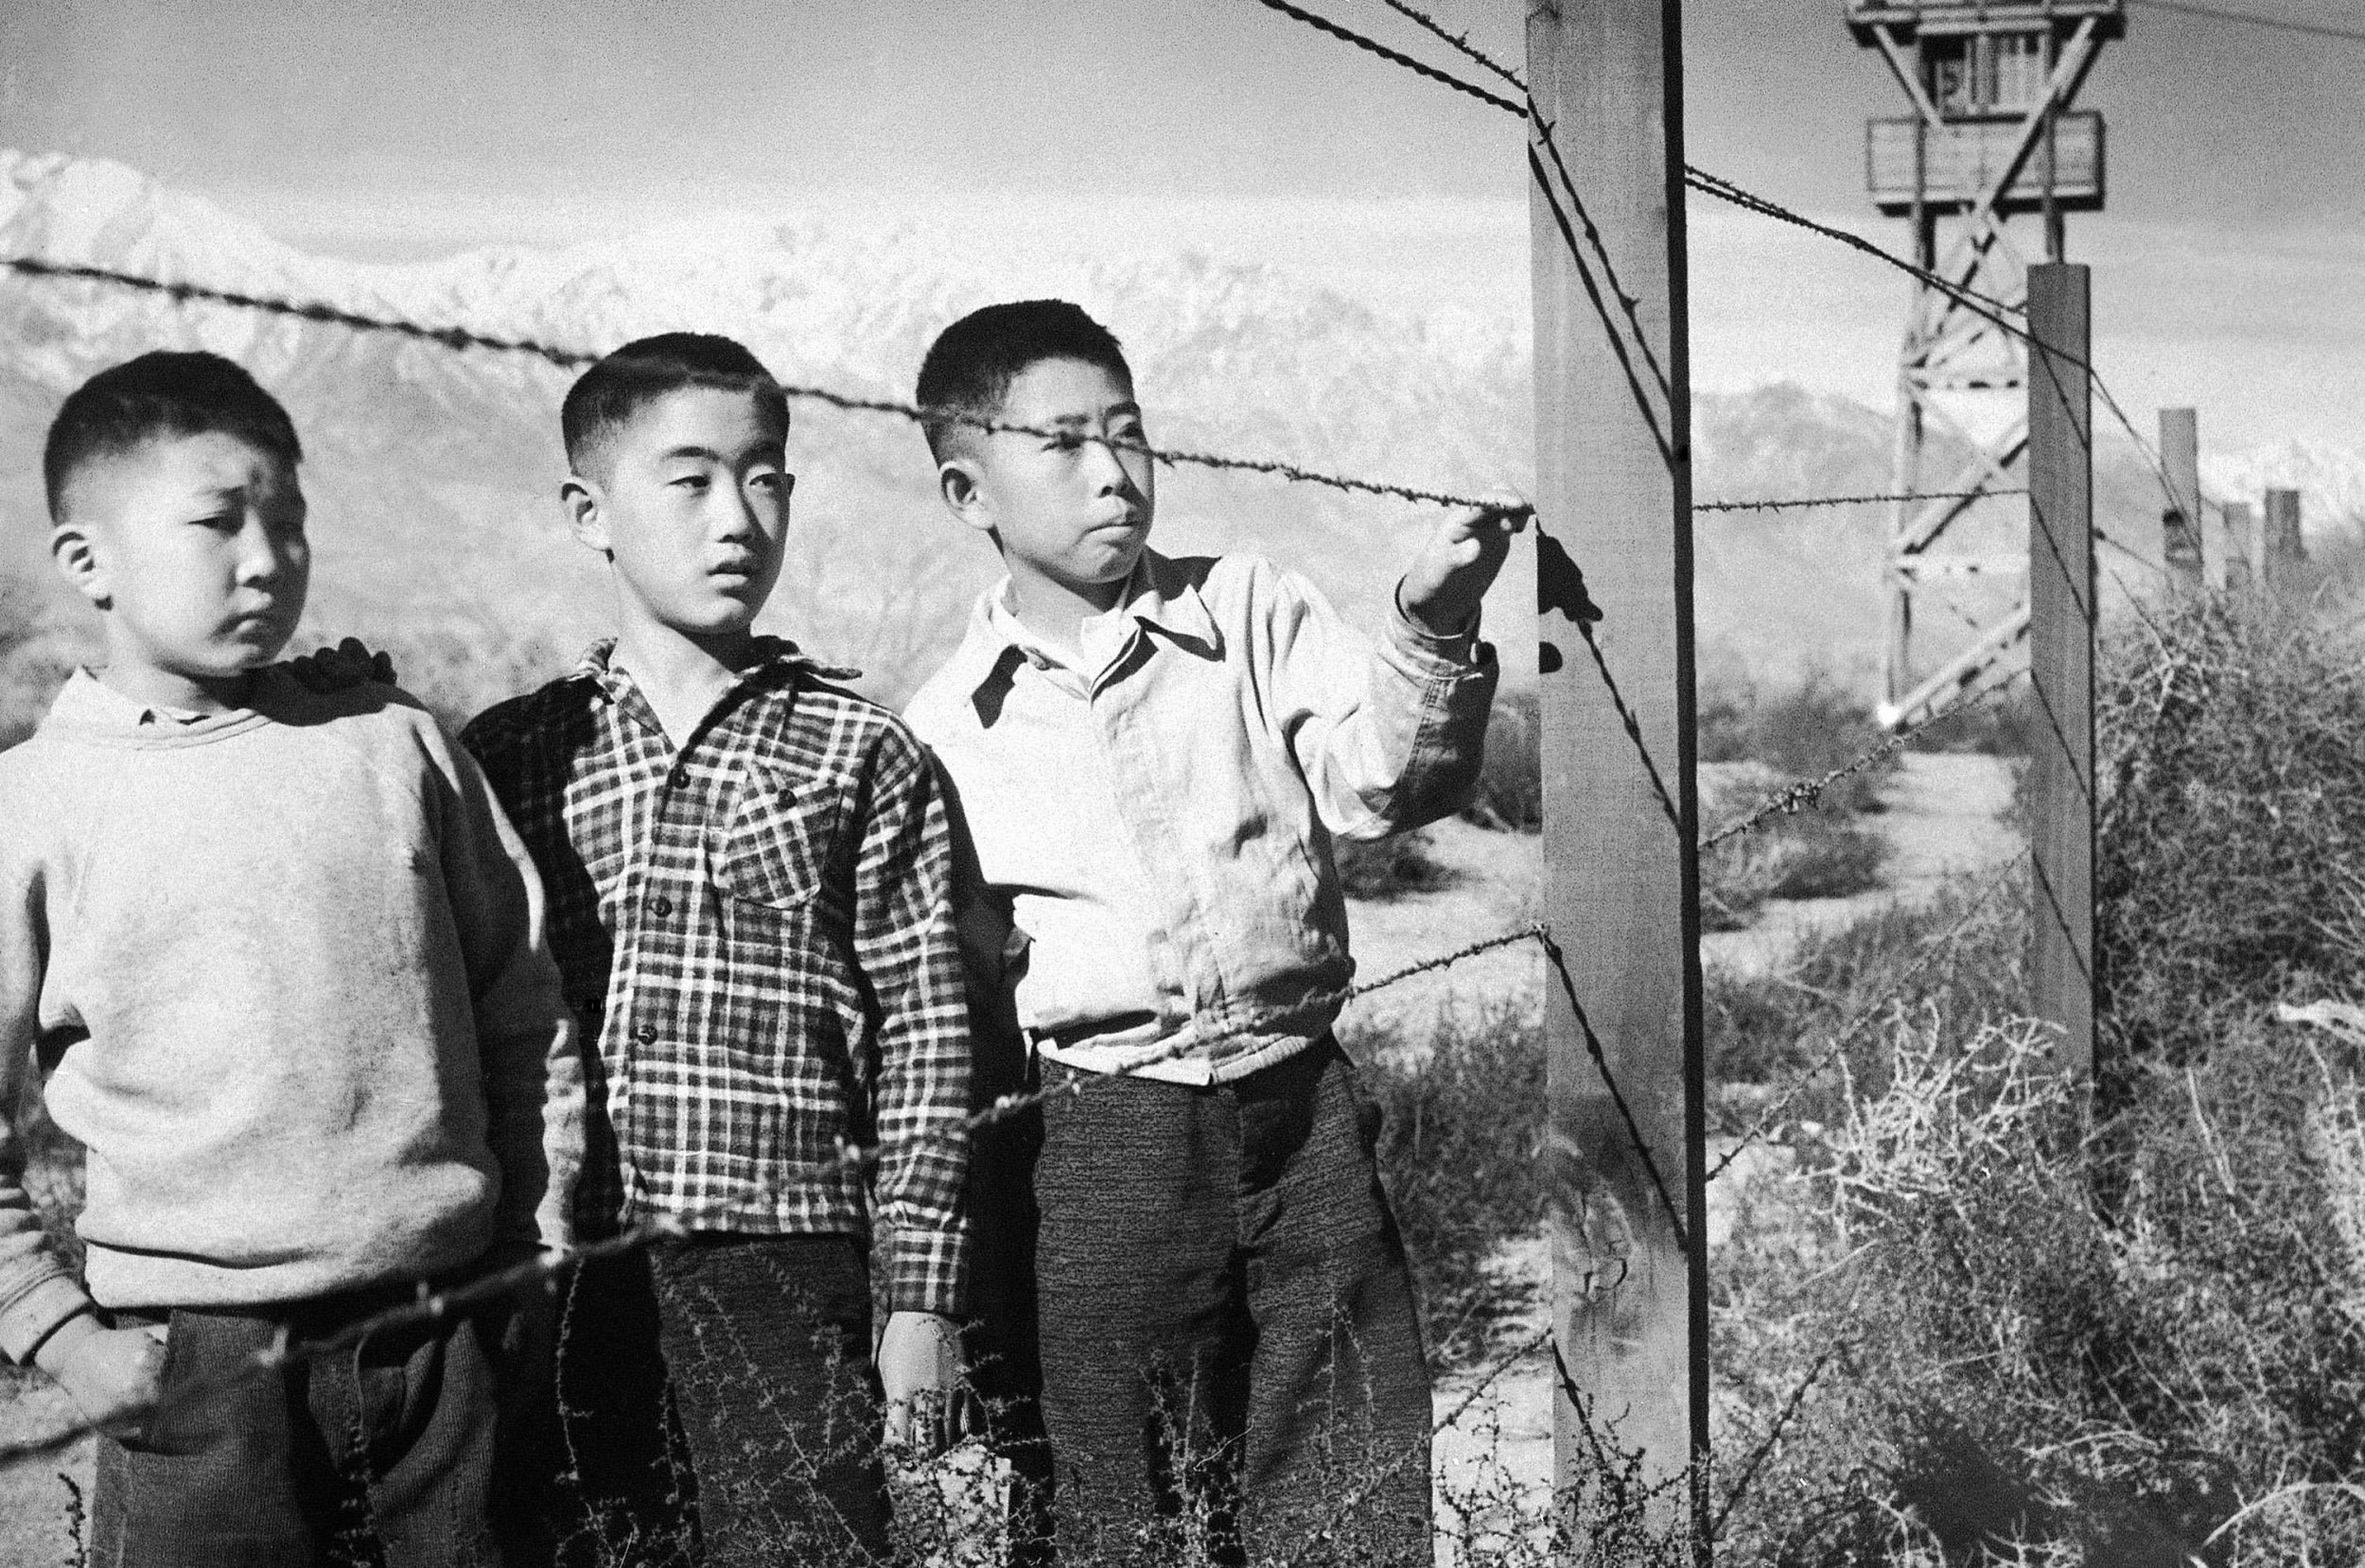 years later internment of ese remains stain on american  75 years later internment of ese remains stain on american history